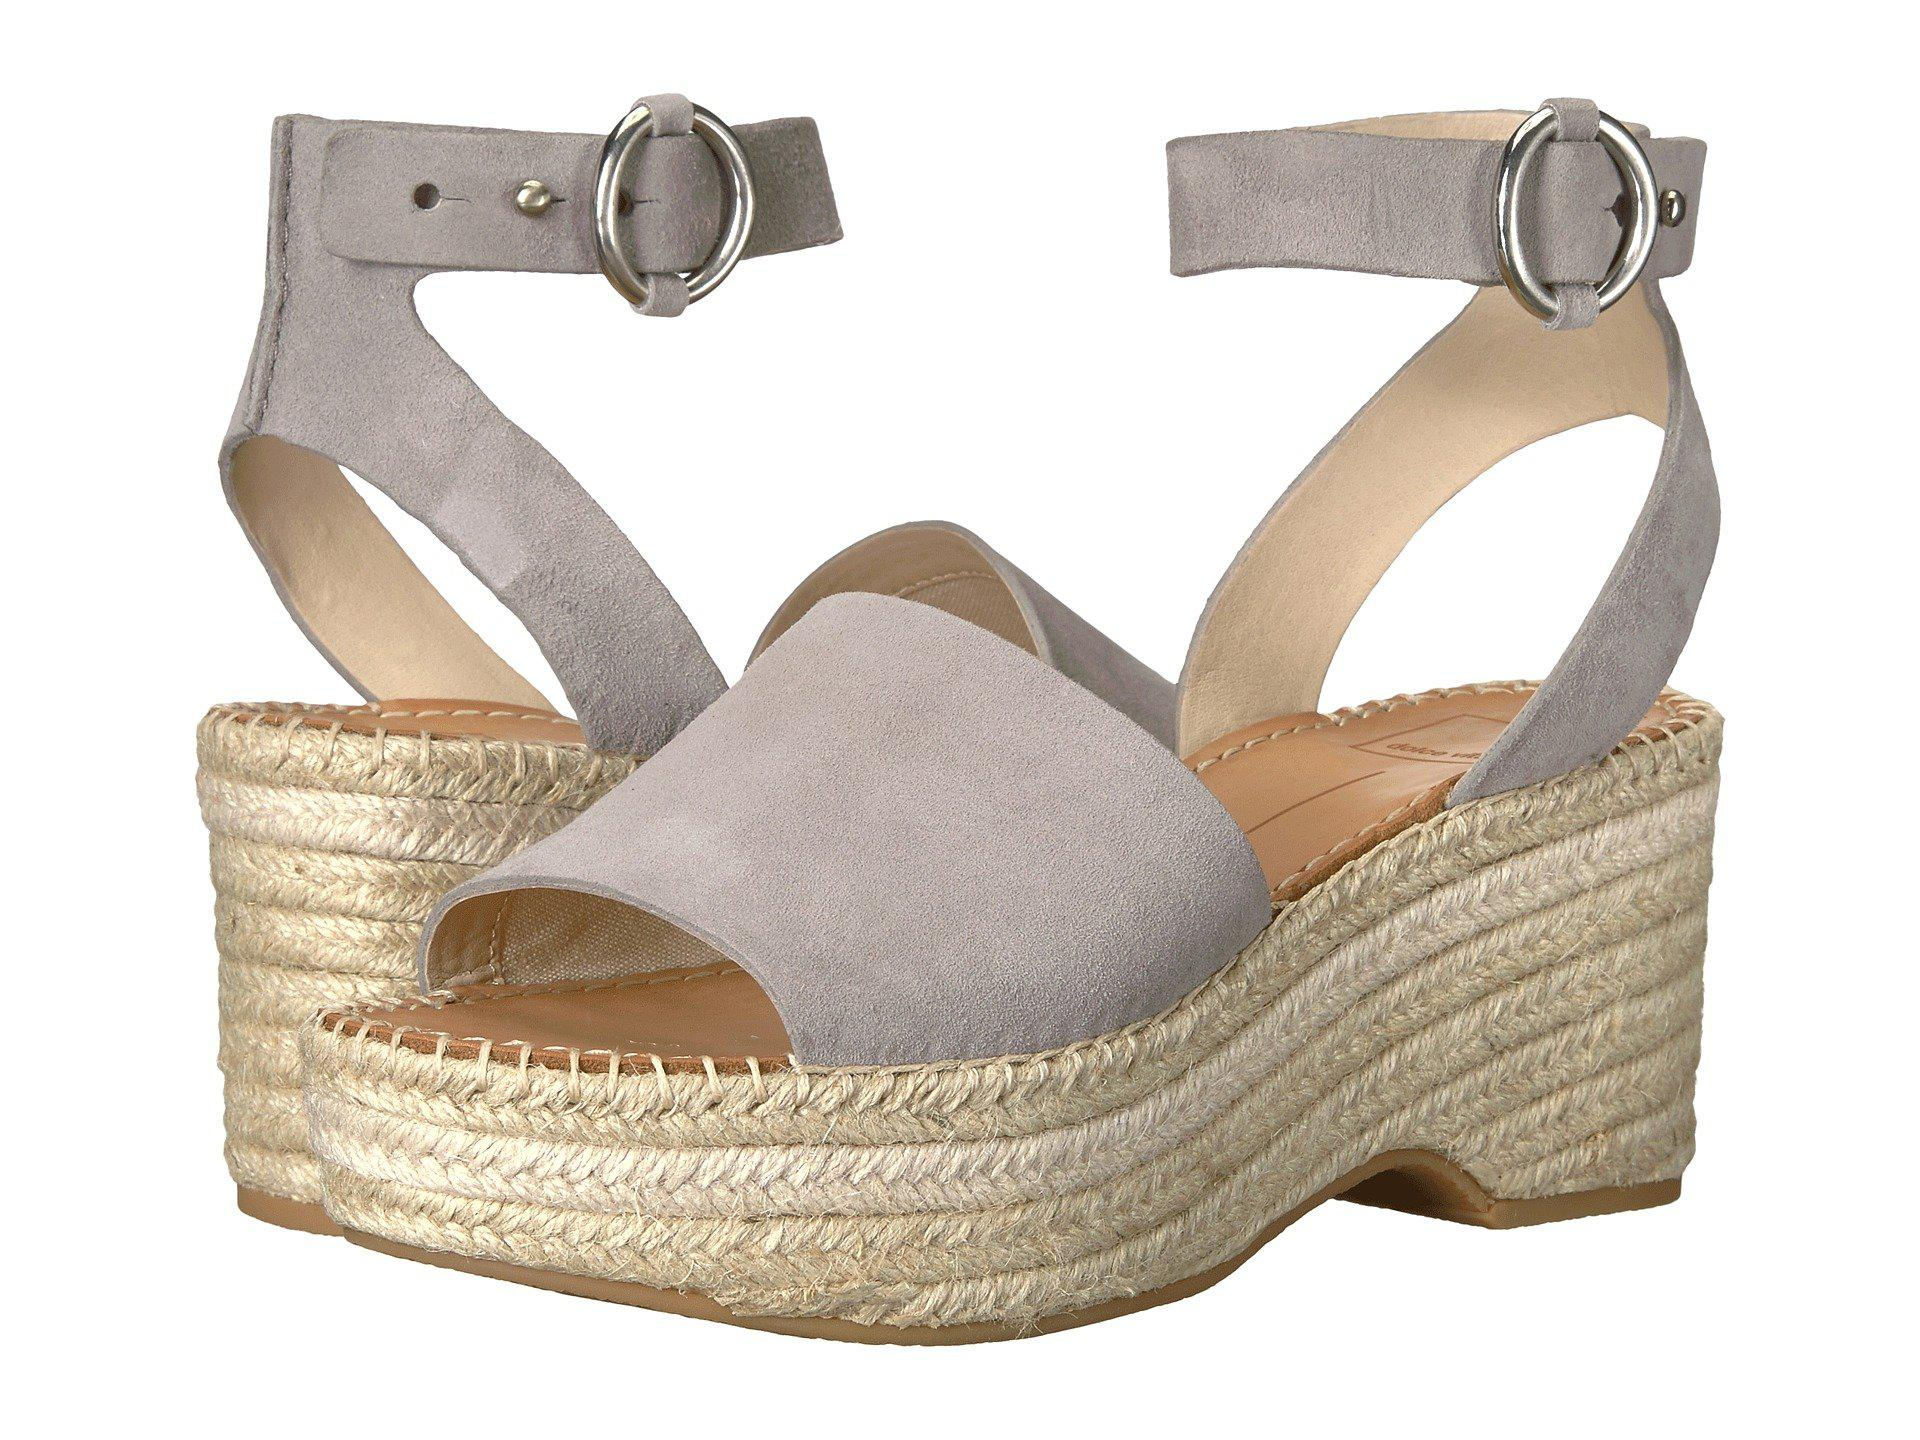 921a83cf47cc Lyst - Dolce Vita Lesly Espadrilles in Gray - Save 51%